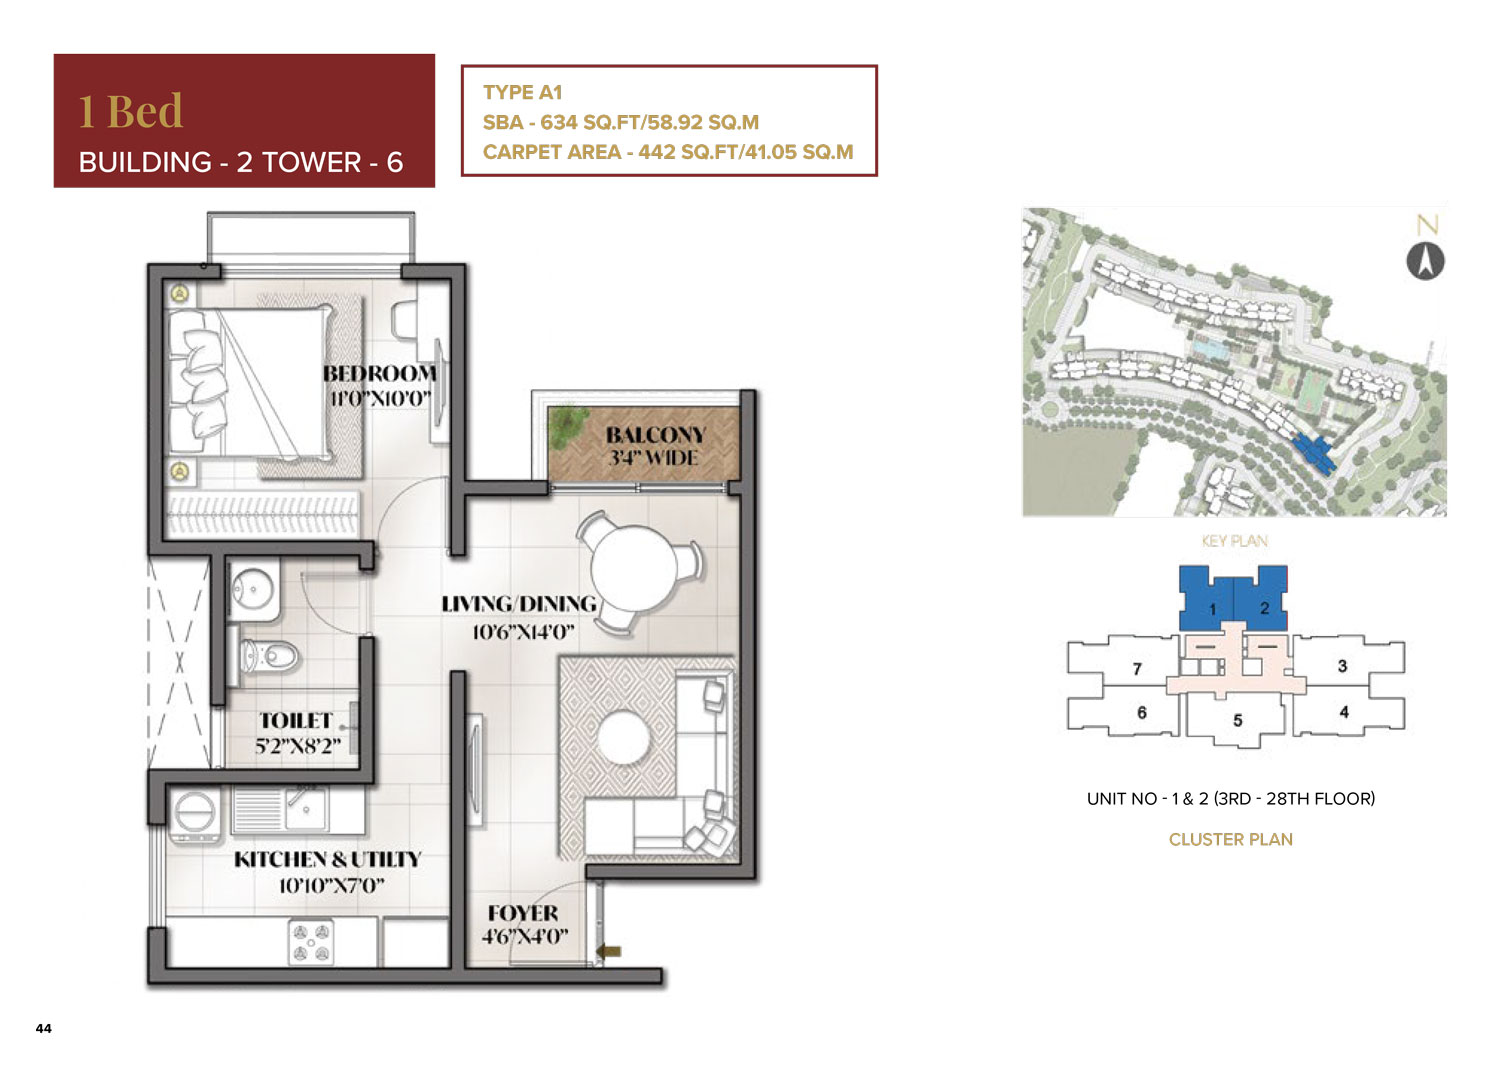 Type A1 - 634 Sq Ft